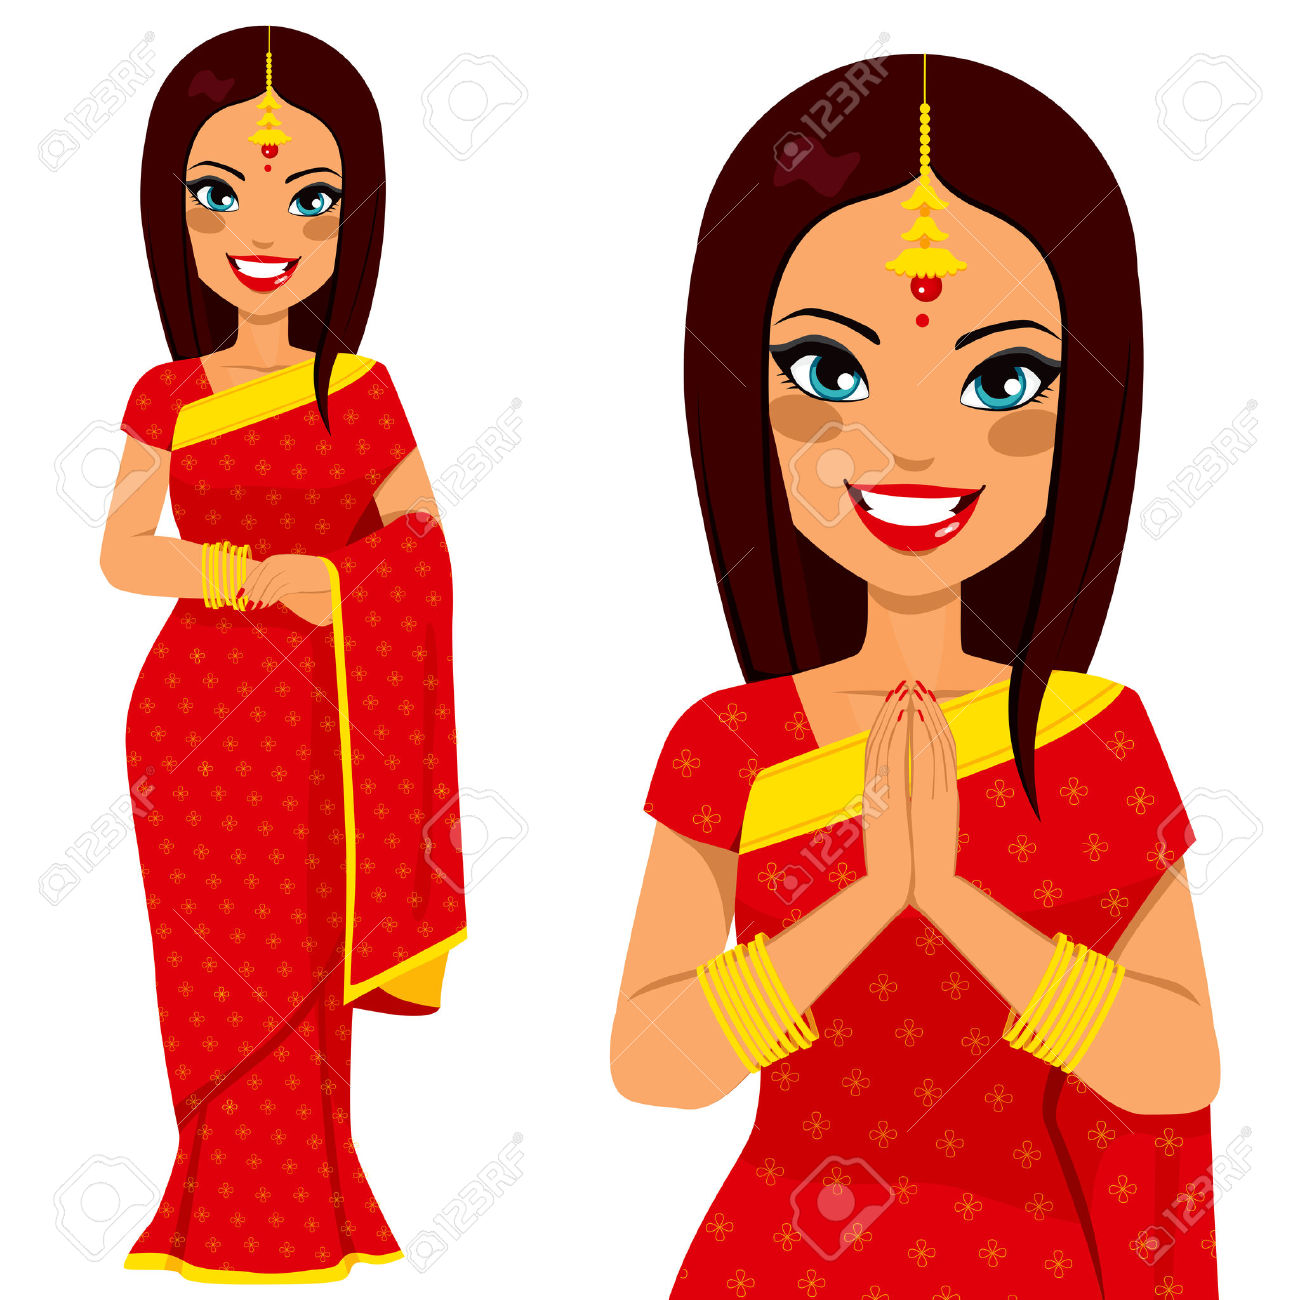 Indian woman clipart praying.